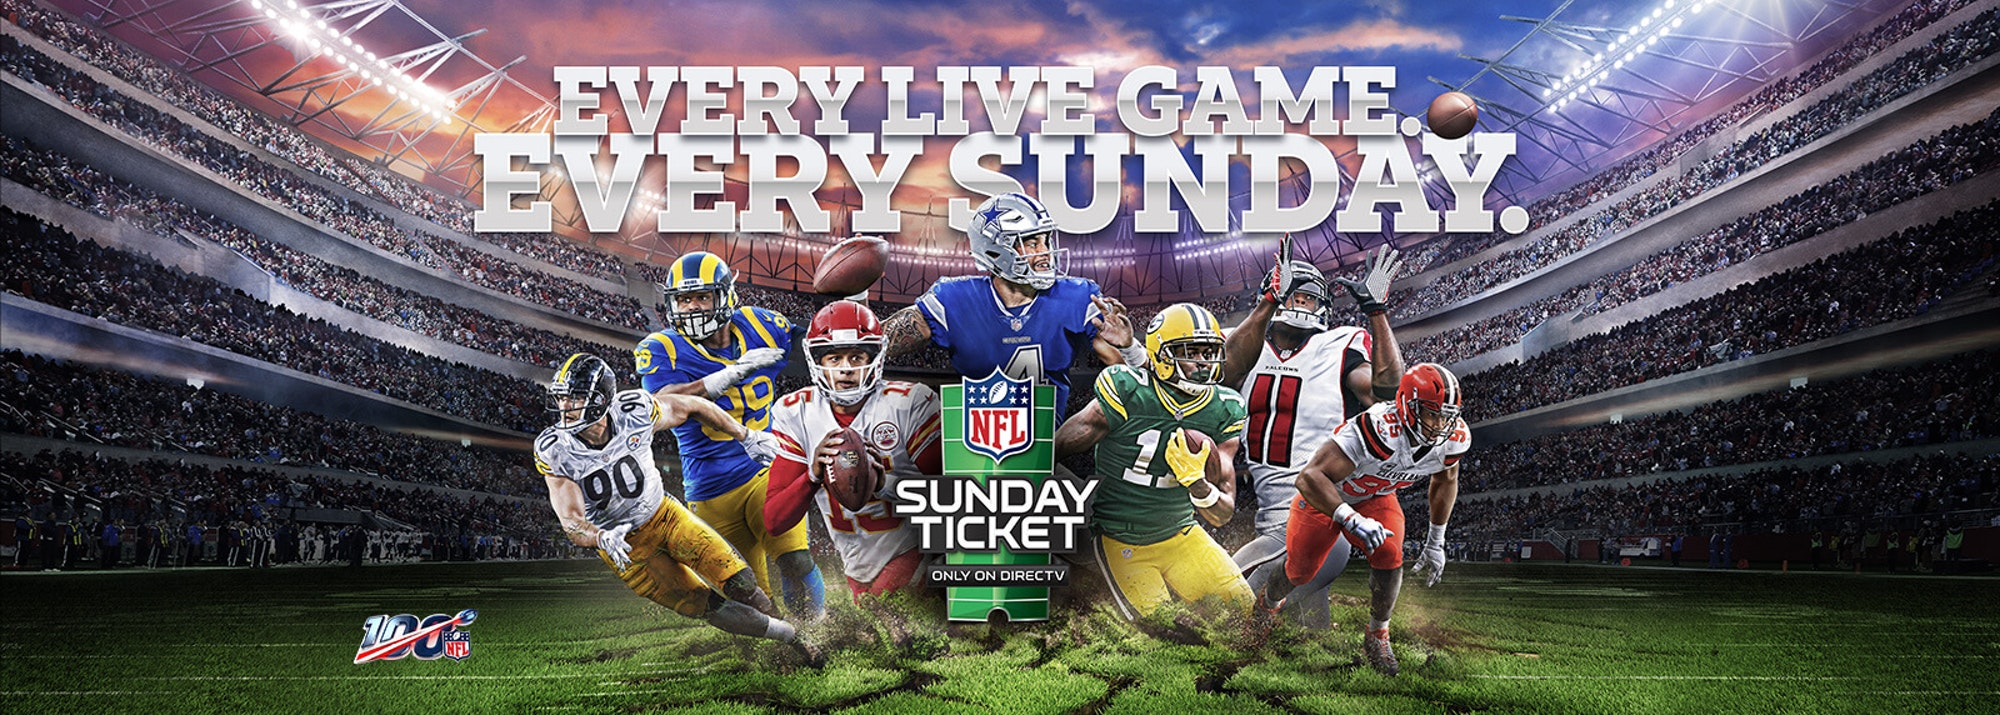 packers chargers nfl sunday ticket streaming